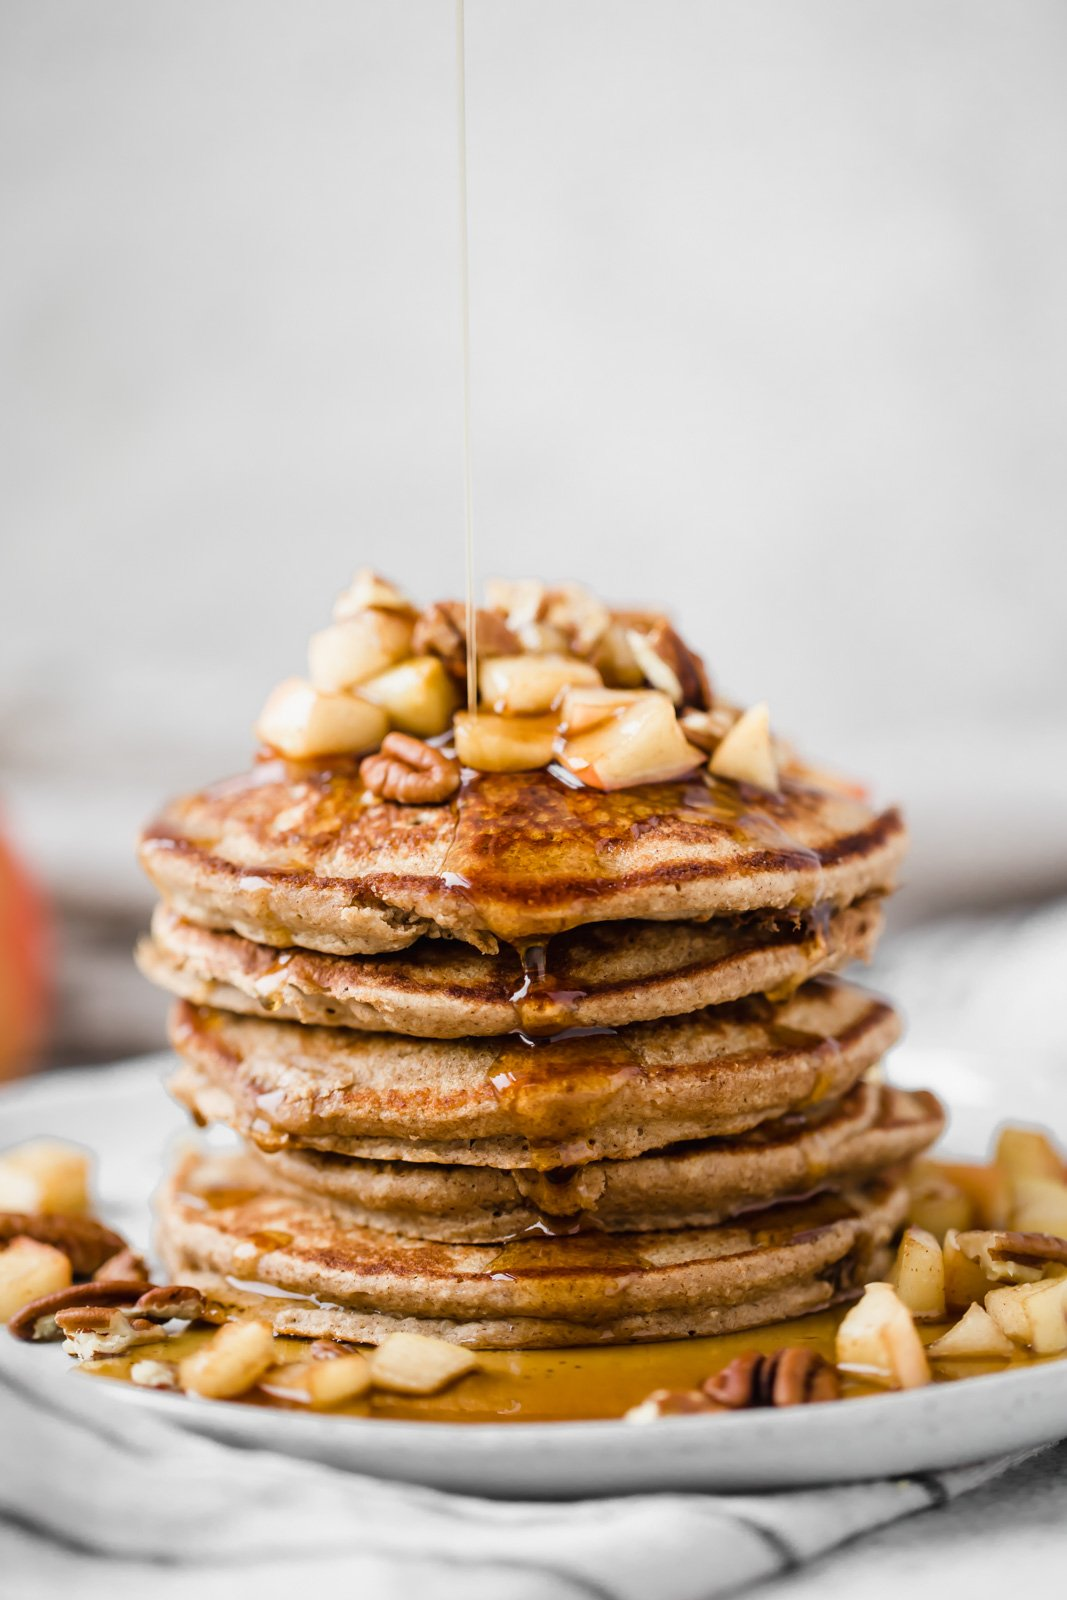 healthy apple pancakes on a plate with maple syrup being poured on top